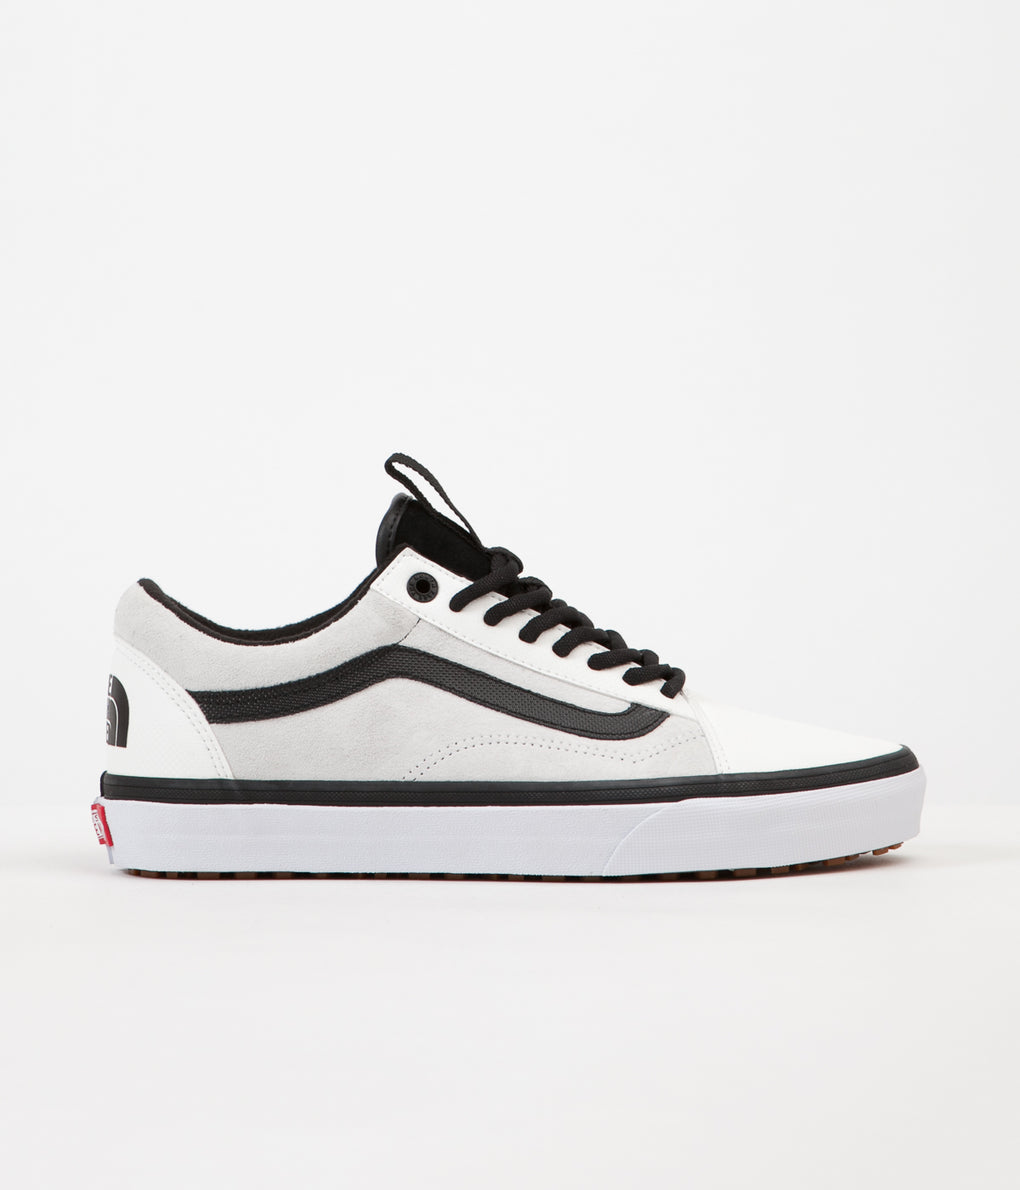 Vans X The North Face  Old Skool MTE DX Shoes - True White / Black